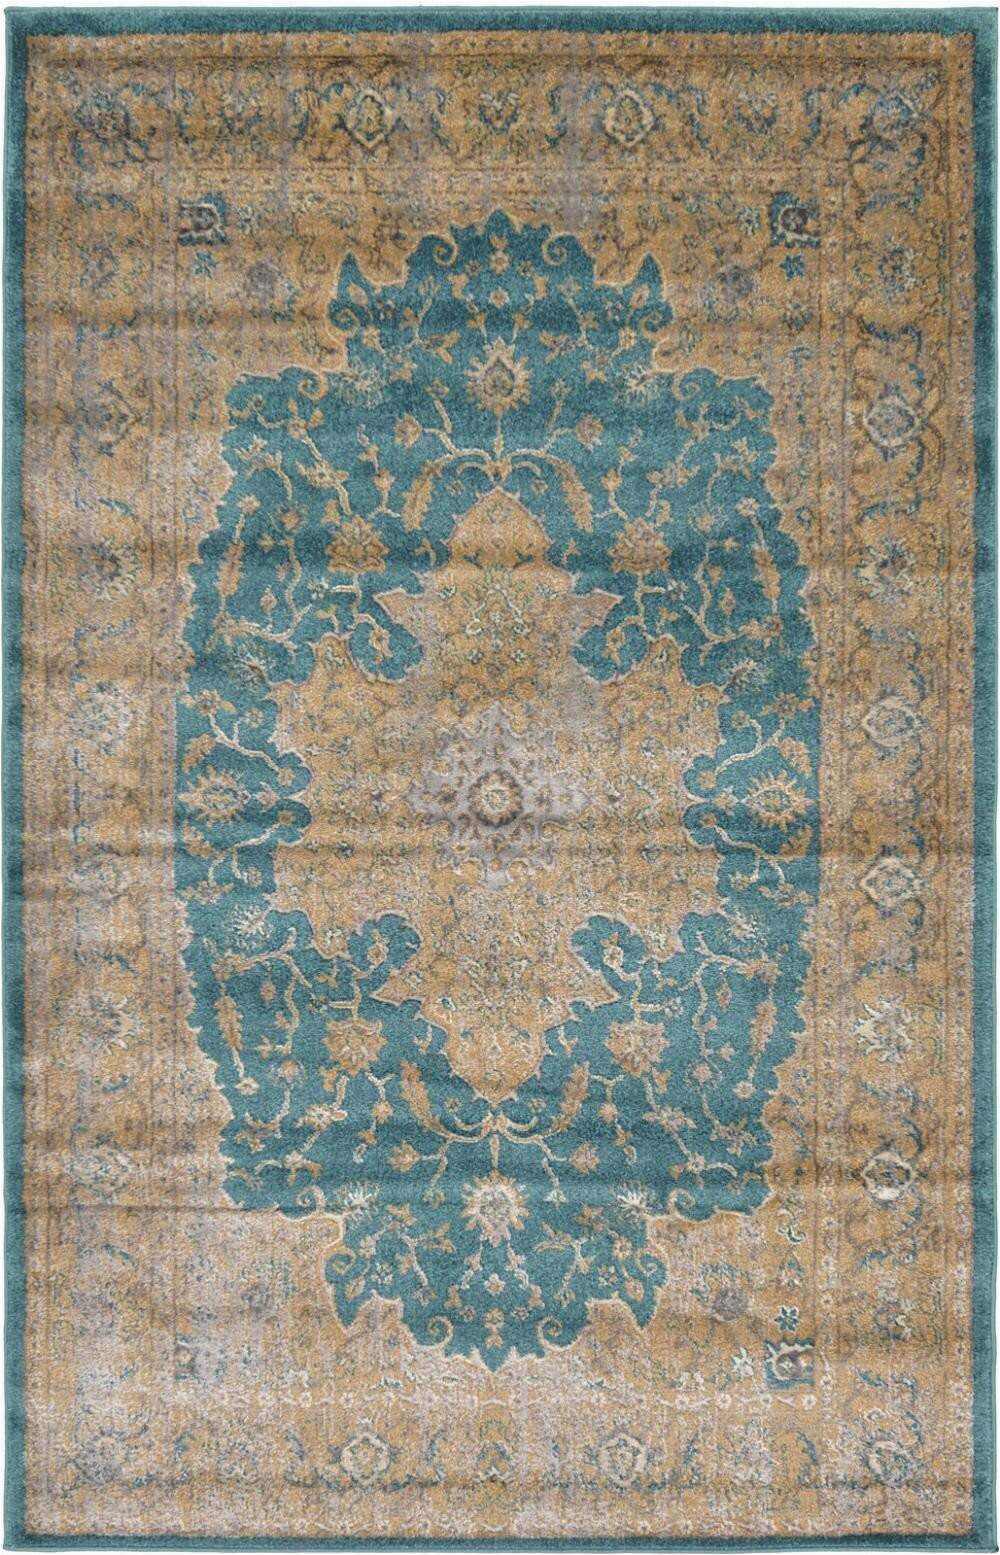 Area Rugs Teal and Brown Mumford oriental Brown Teal area Rug